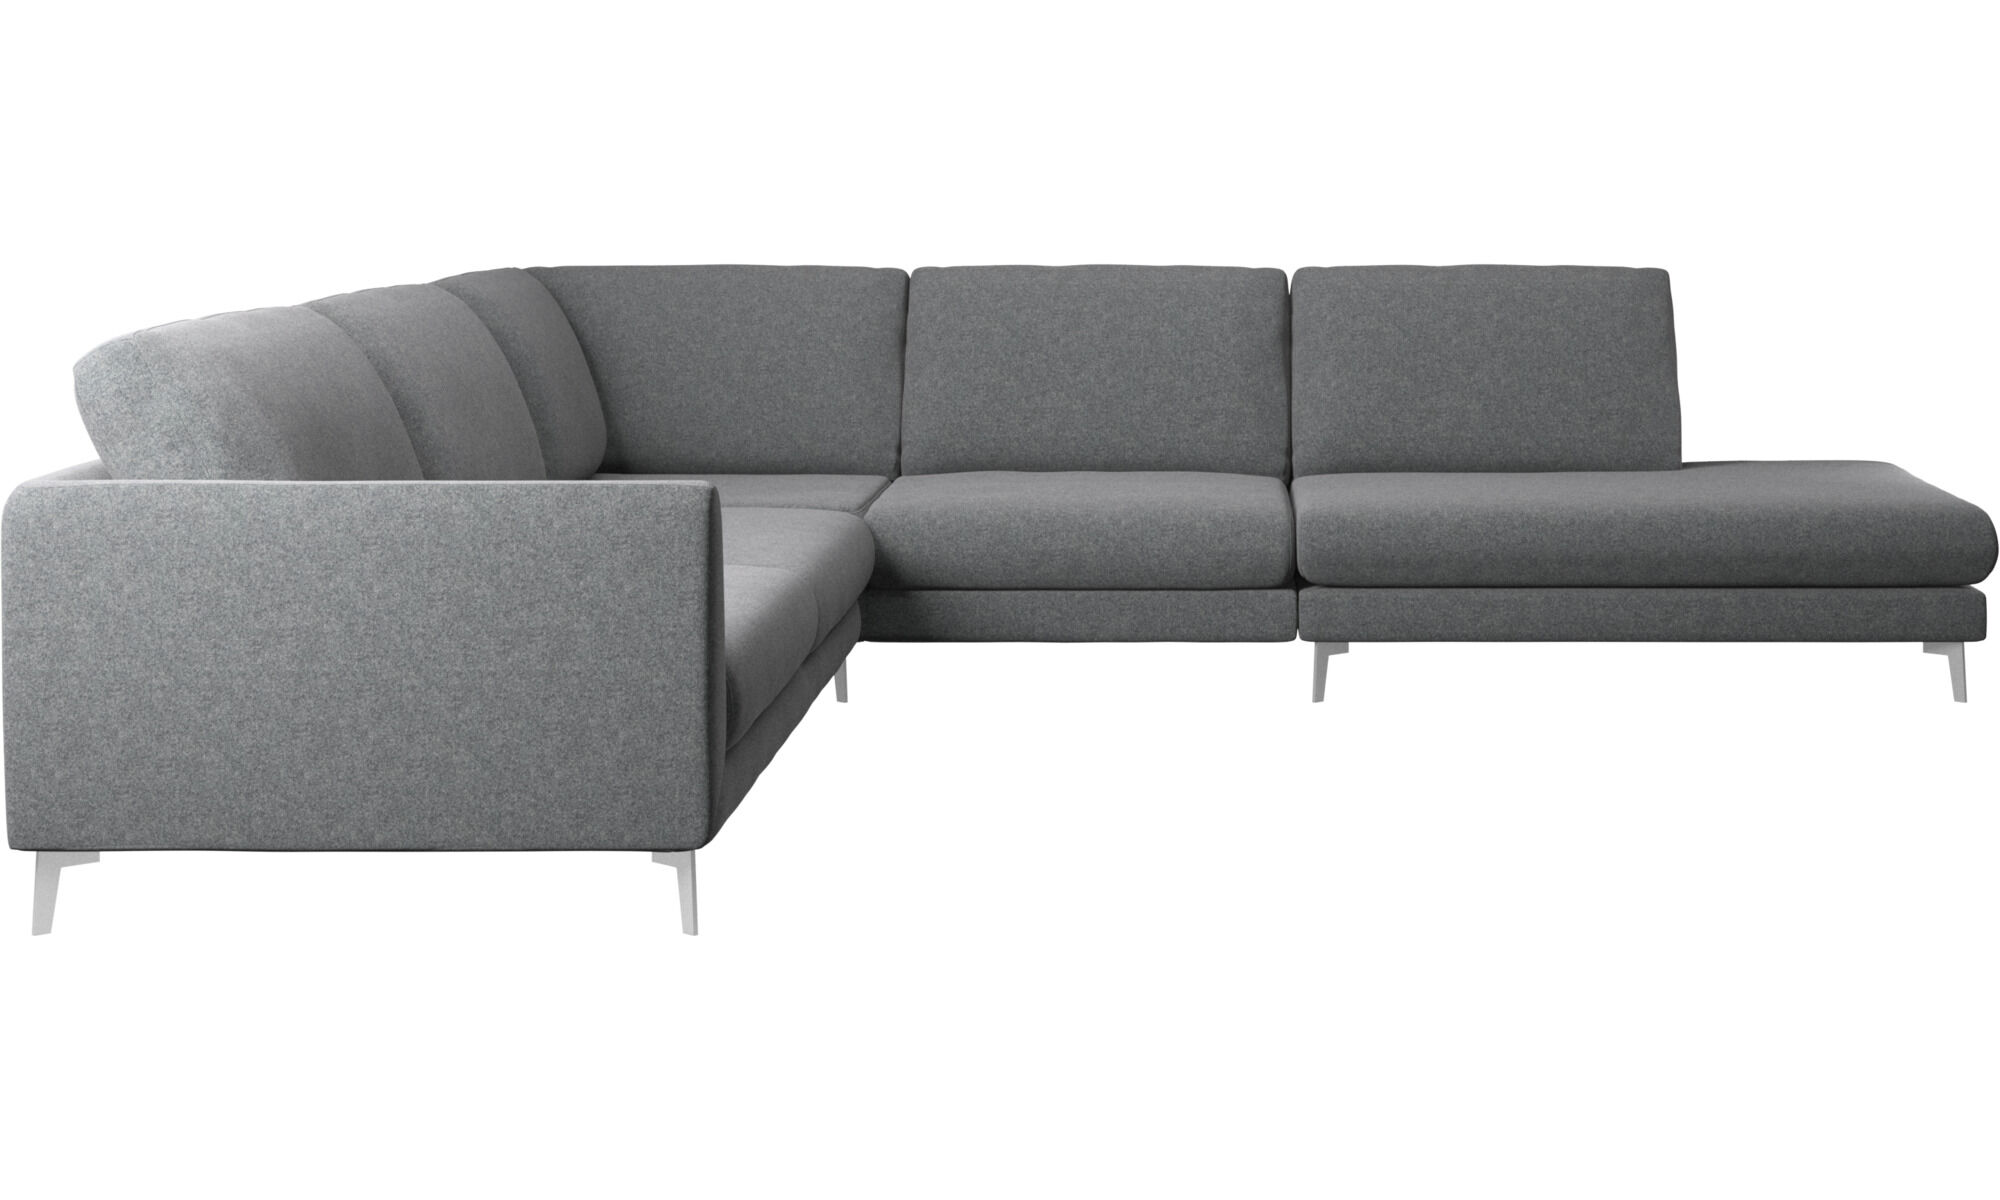 Incroyable Sofas With Open End   Fargo Corner Sofa With Lounging Unit   Gray   Fabric  ...